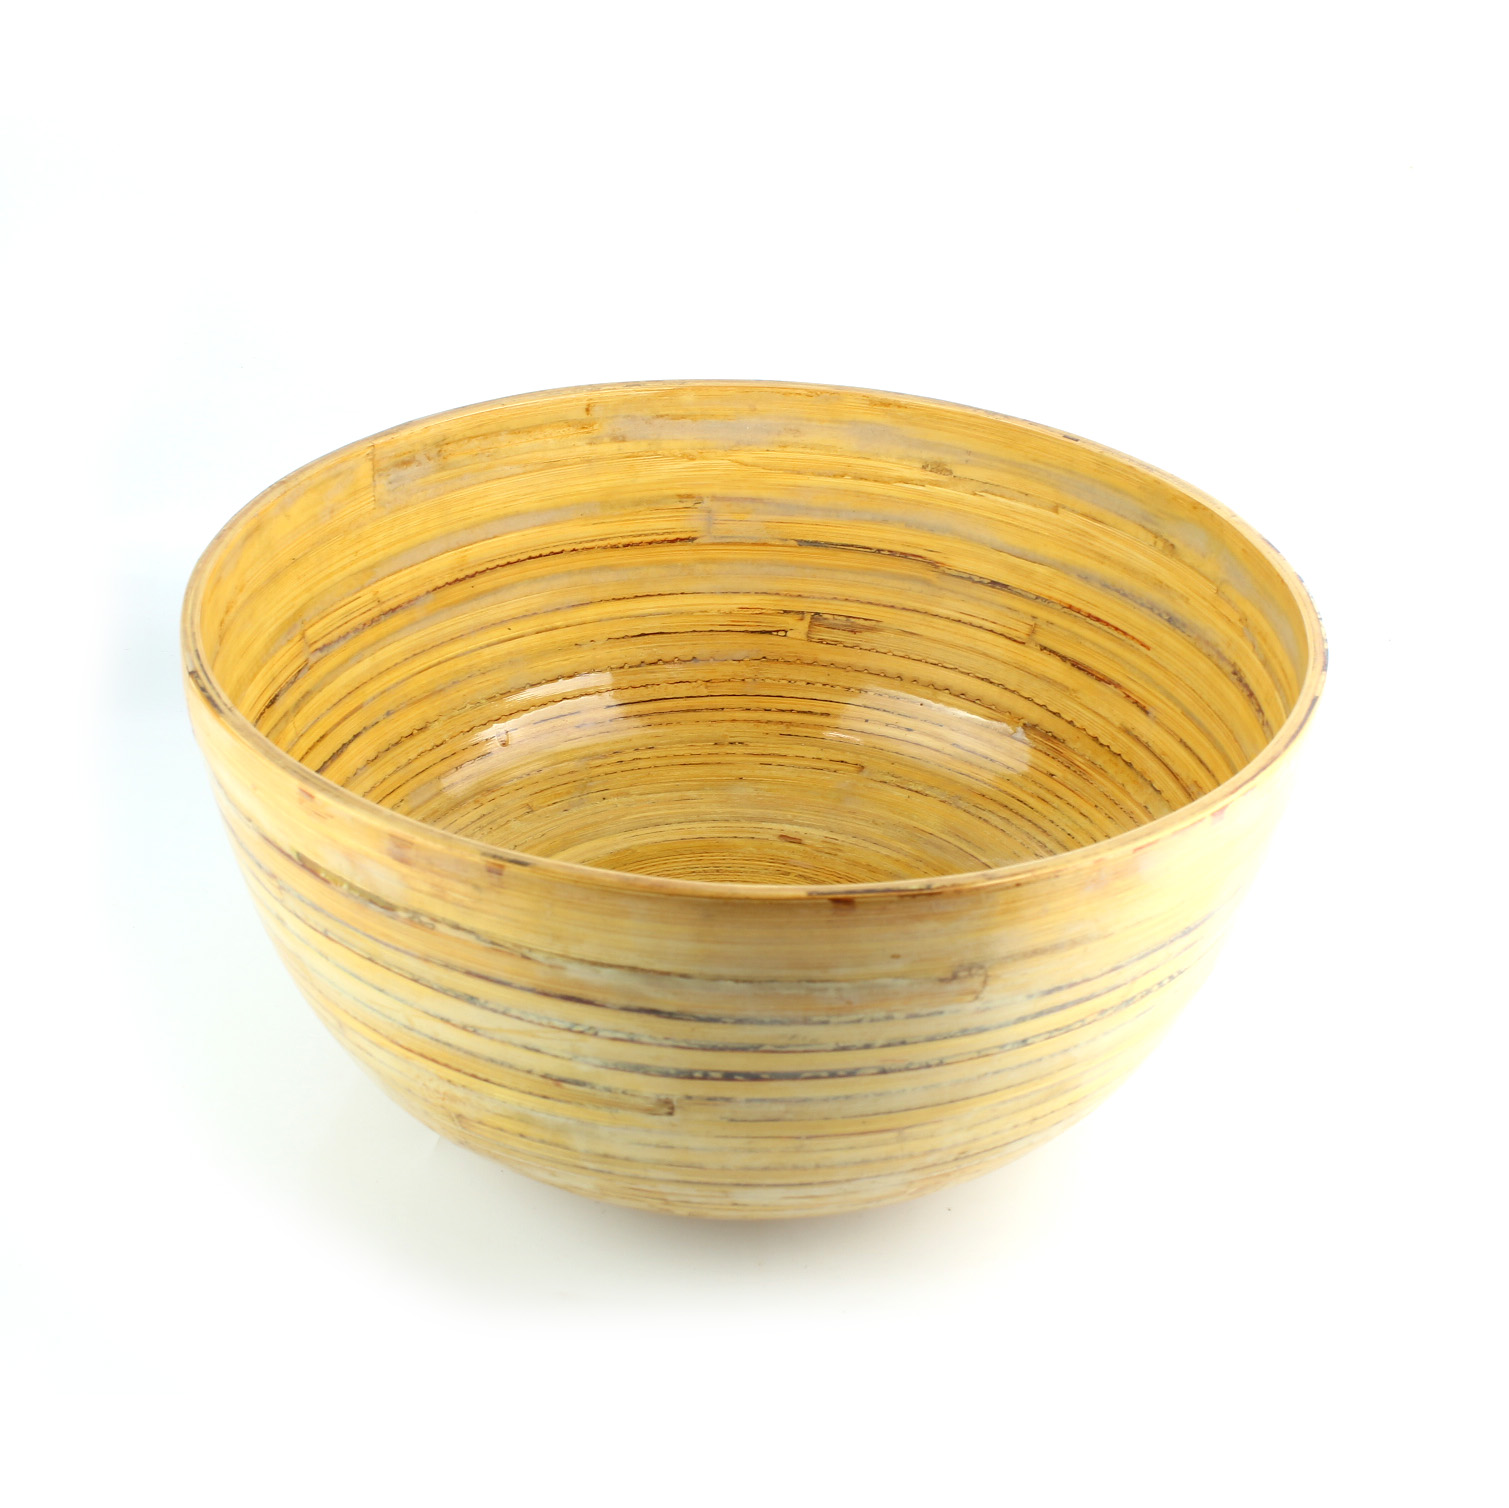 Bamboo Lacquer Bowl